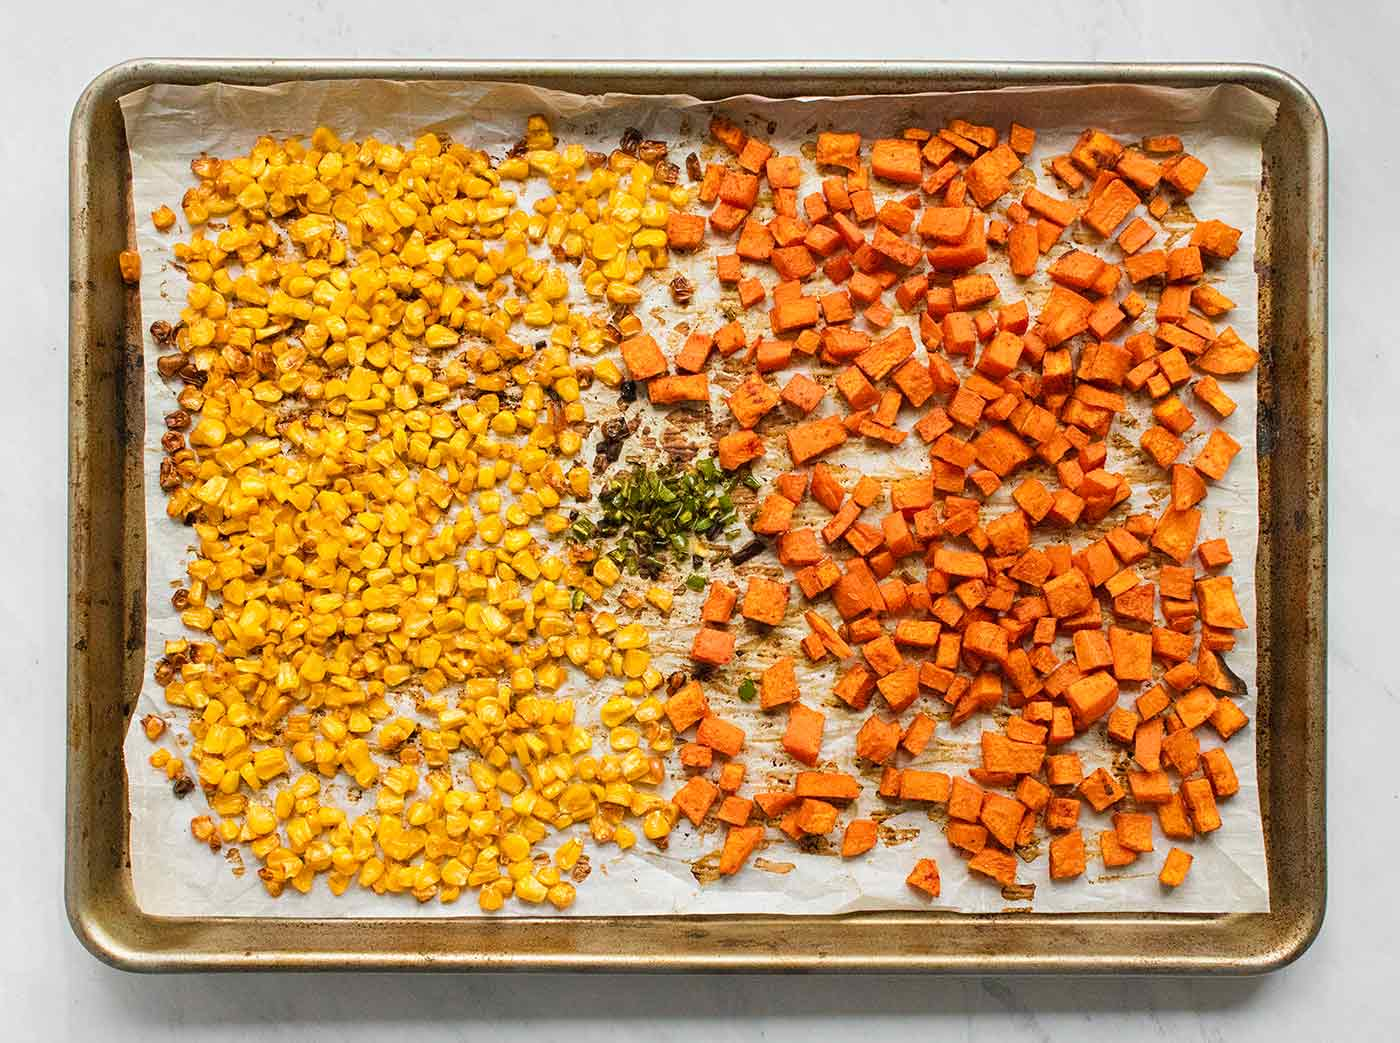 Sheet pan full of roasted vegetables for Sweet Potato Nachos.